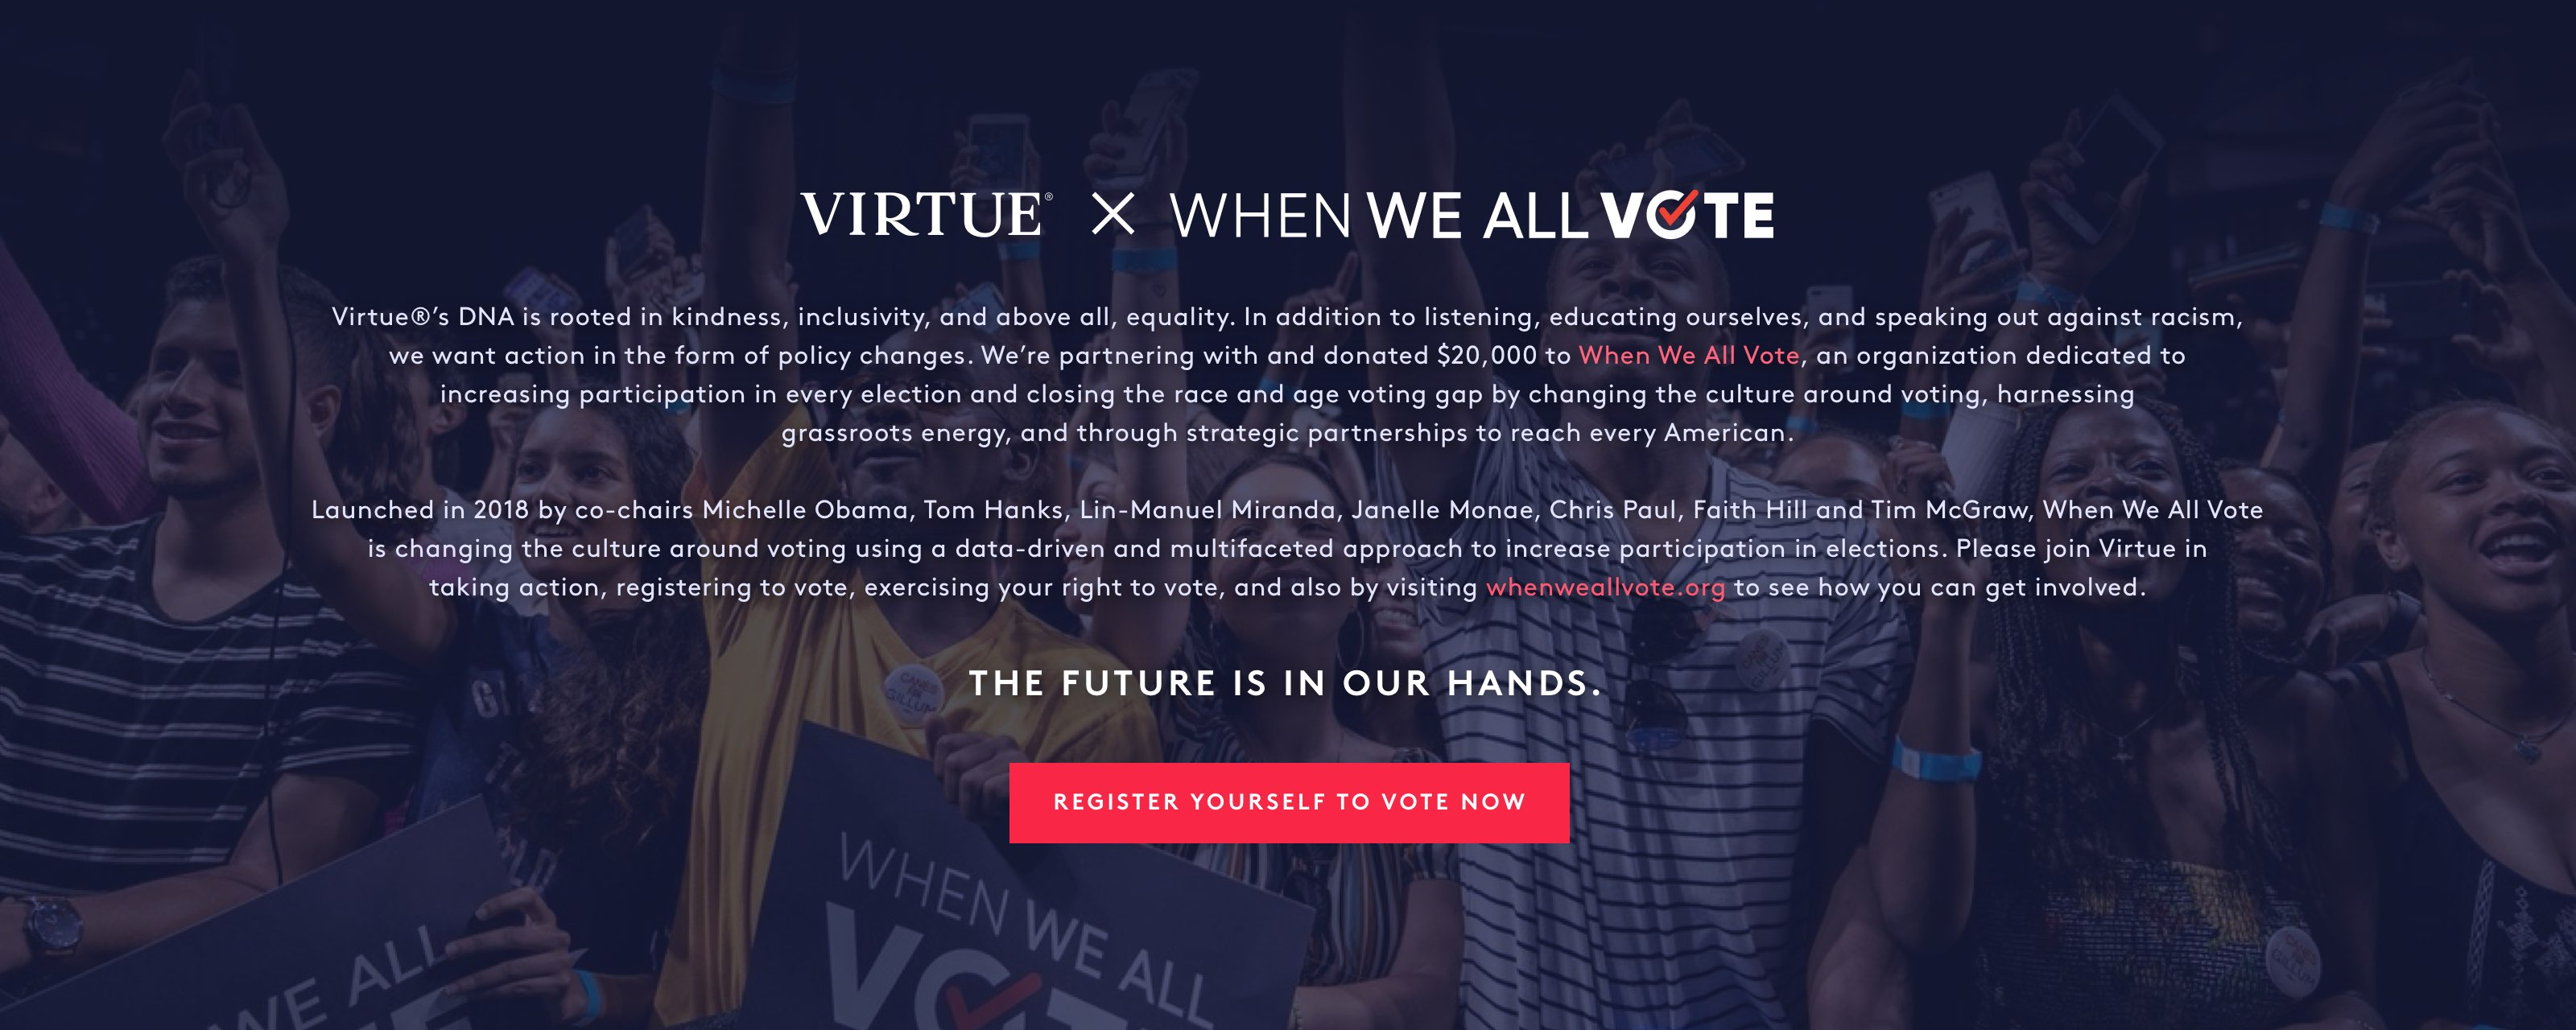 Virtue x When We All Vote